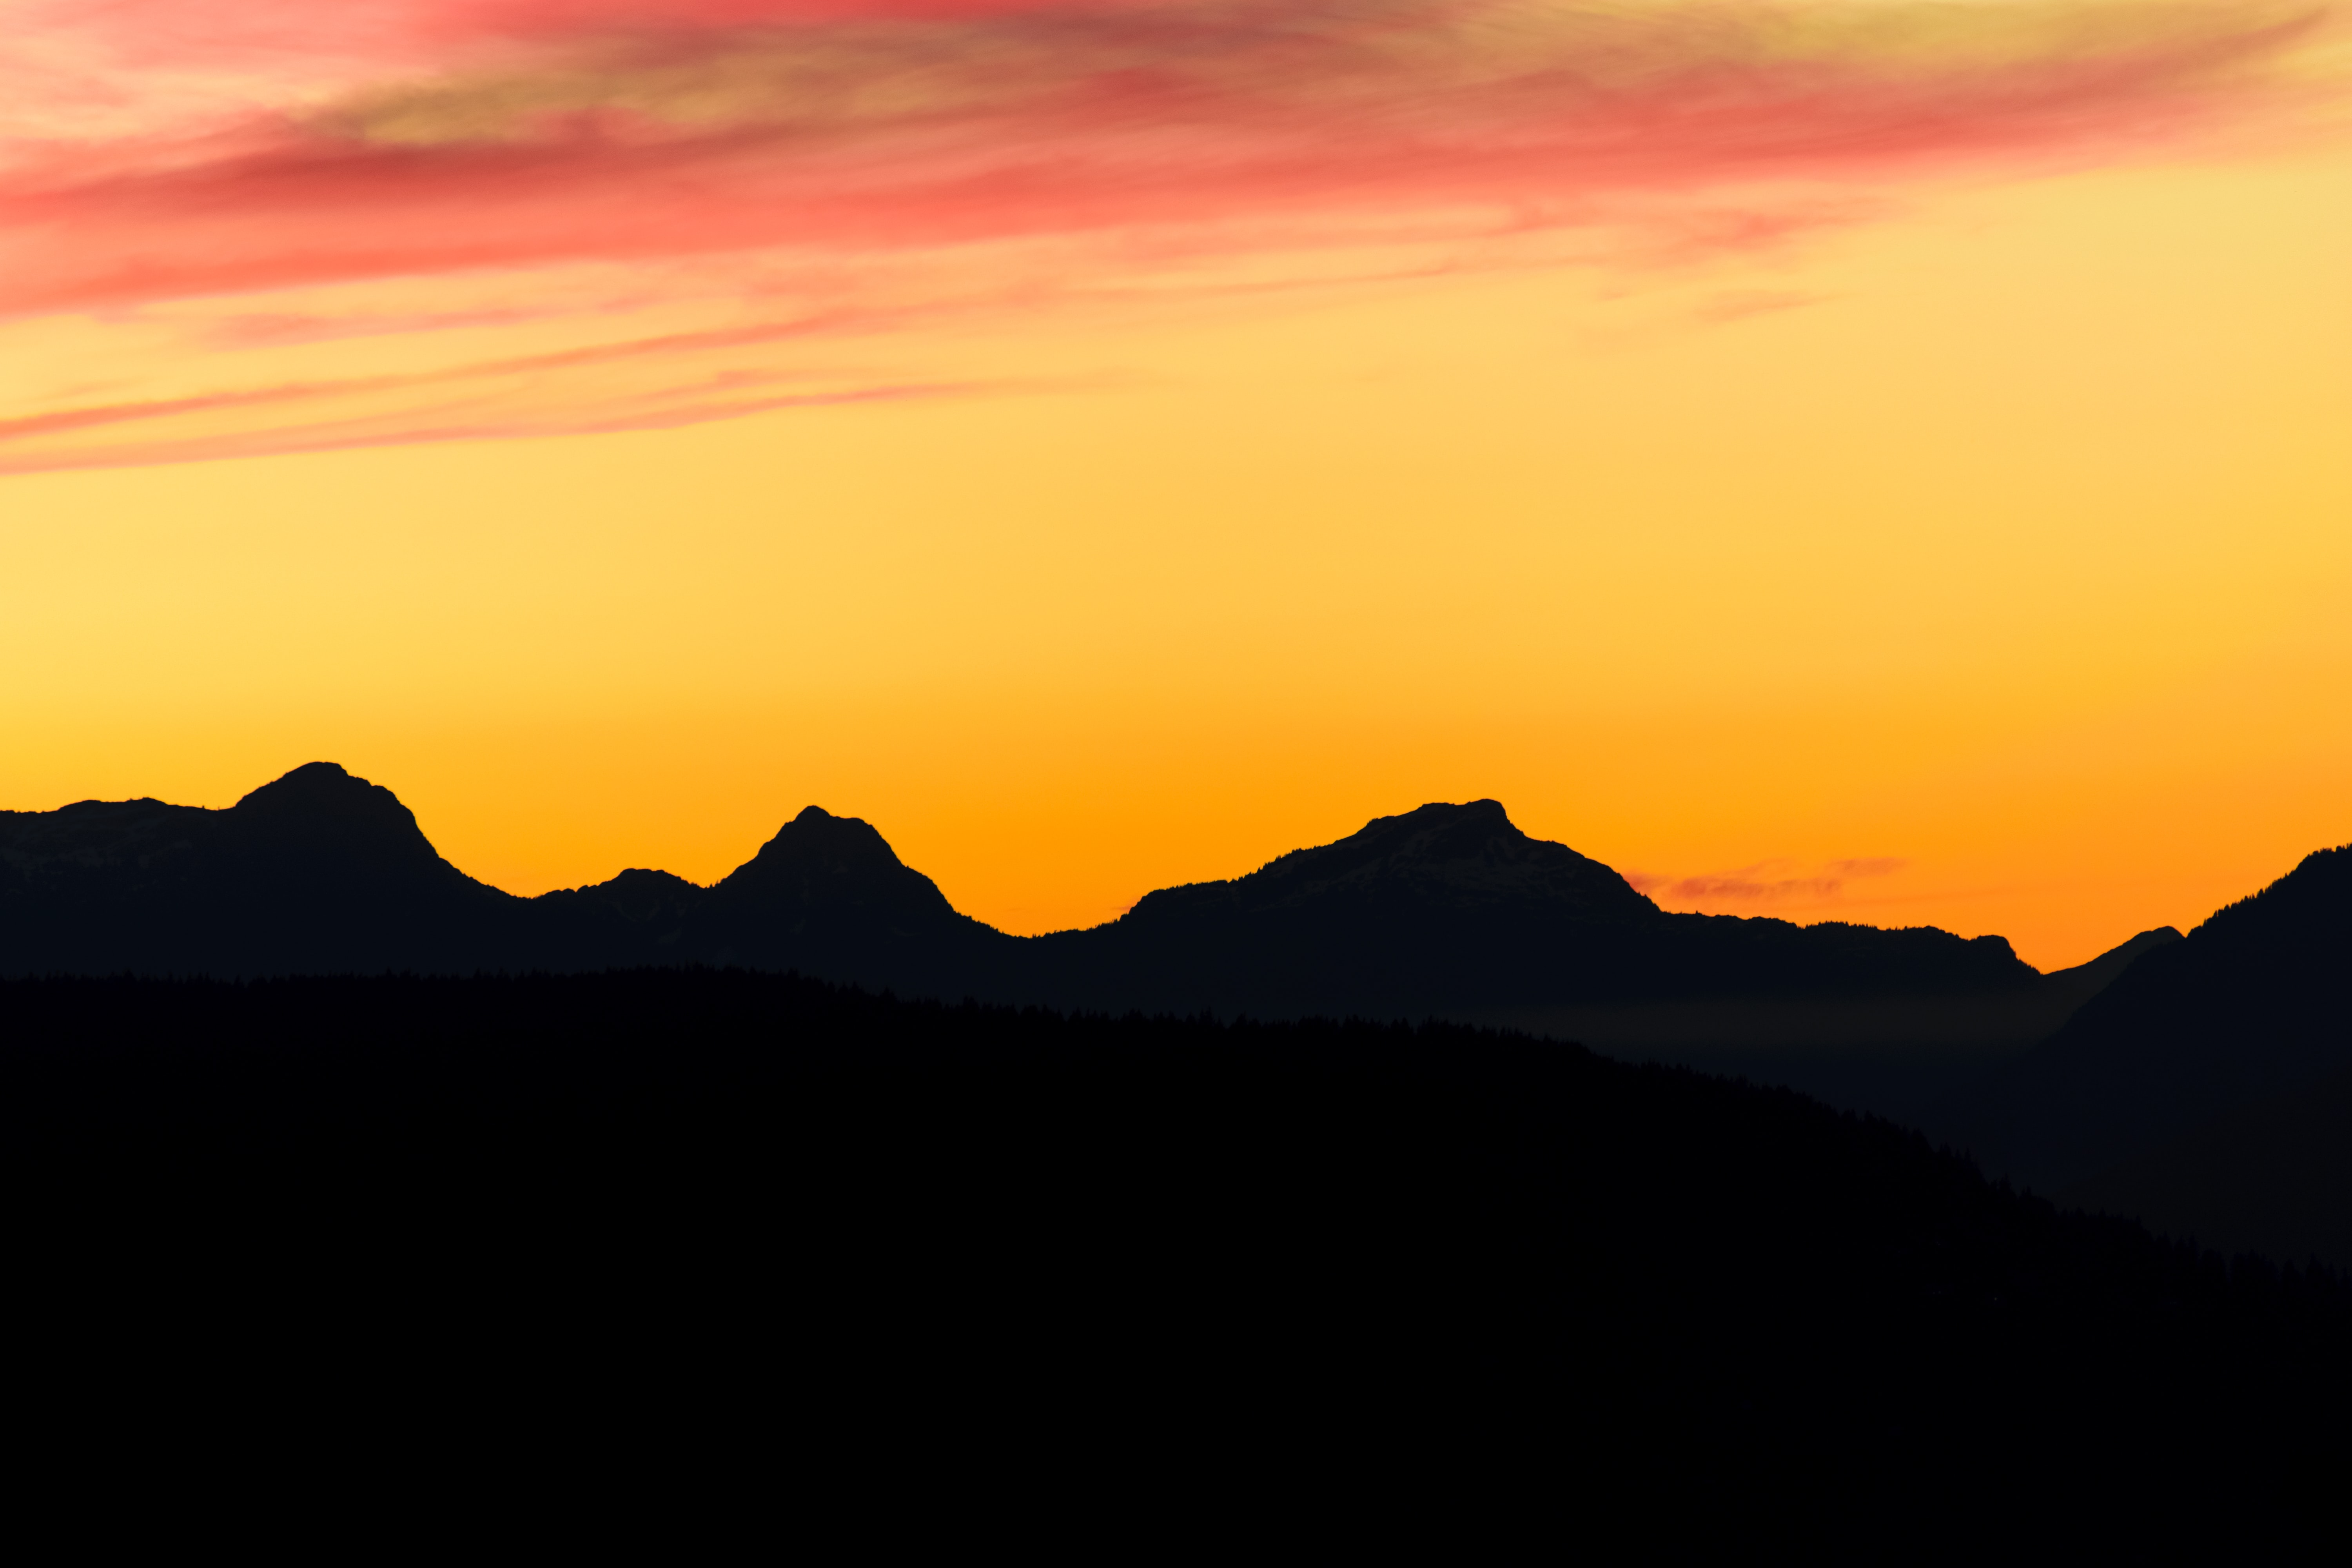 silhouette photography of mountains underneath golden hour